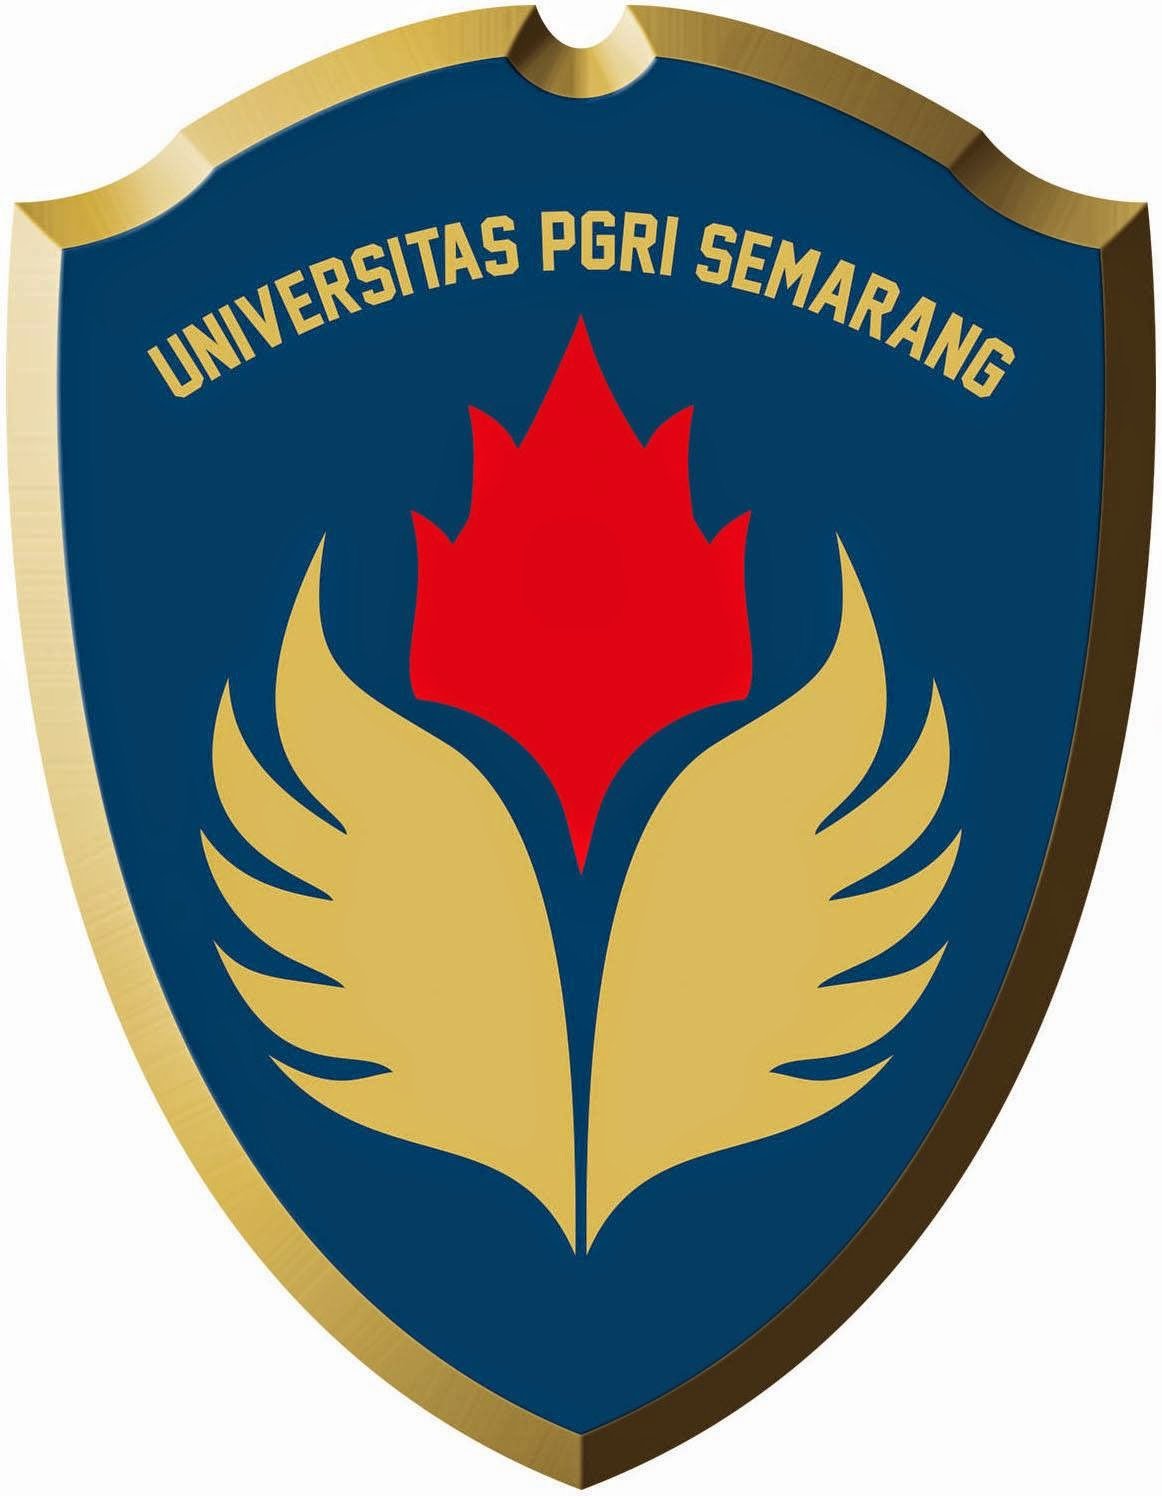 �restu education� makna lambang atau logo universitas